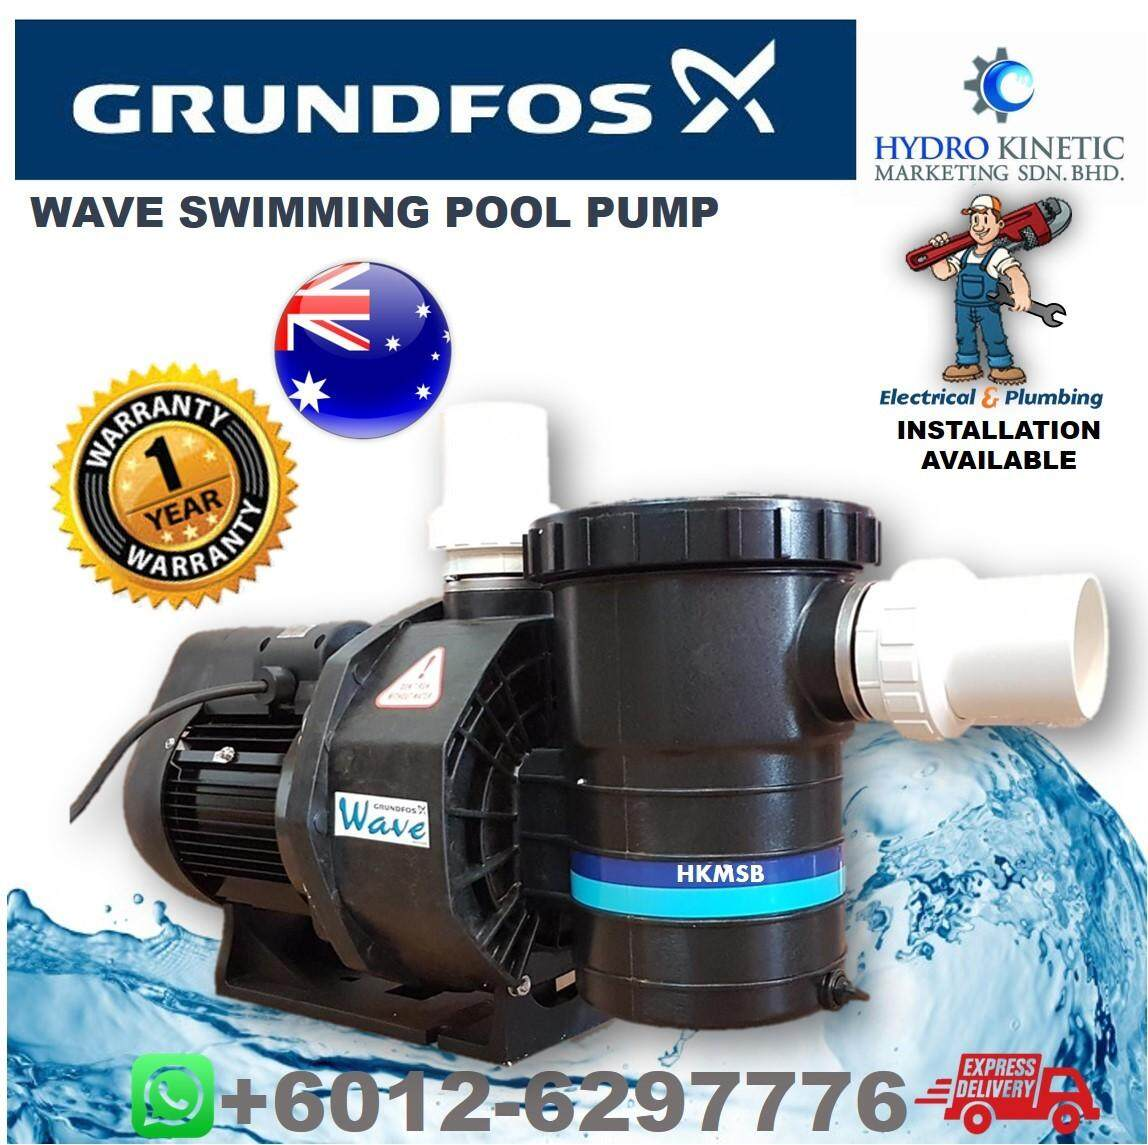 Grundfos Wave Sb10 (1.0hp/ 0.75kw) Swimming Pool Water Pump, Pam Kolam Renang **installation Available Kl & Klg Only By Hydro Kinetic Marketing Sdn Bhd.